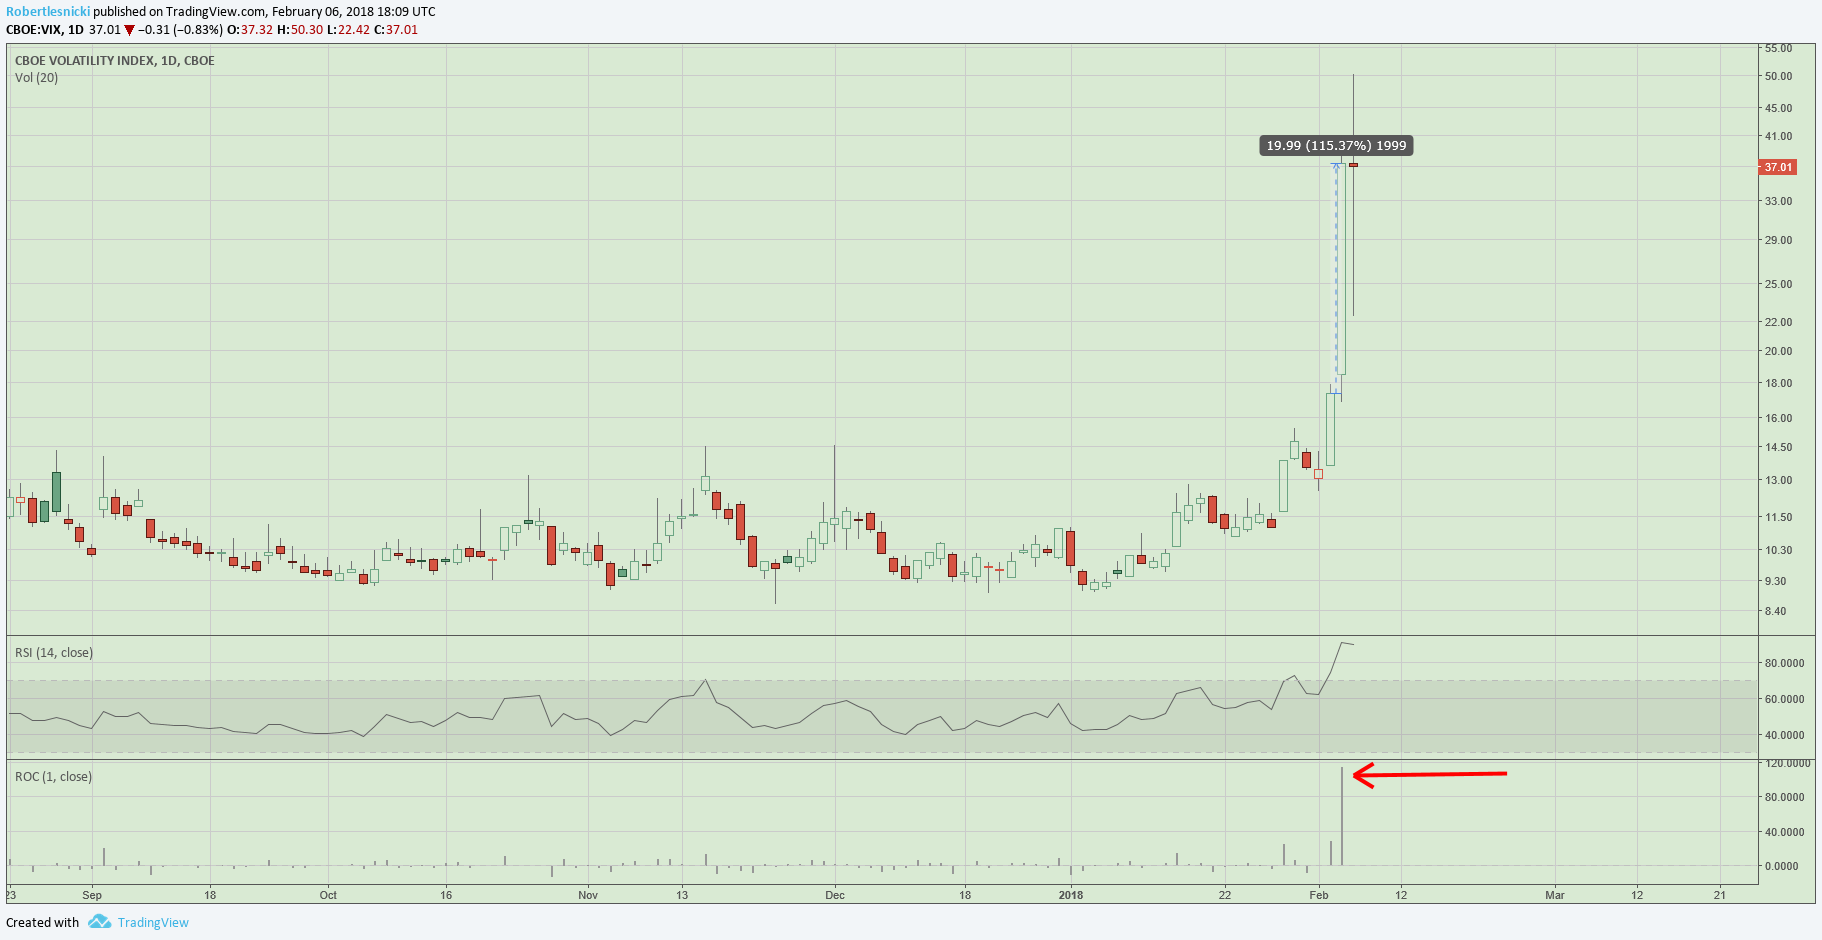 Biggest 1 day up move in the VIX's history! +115%